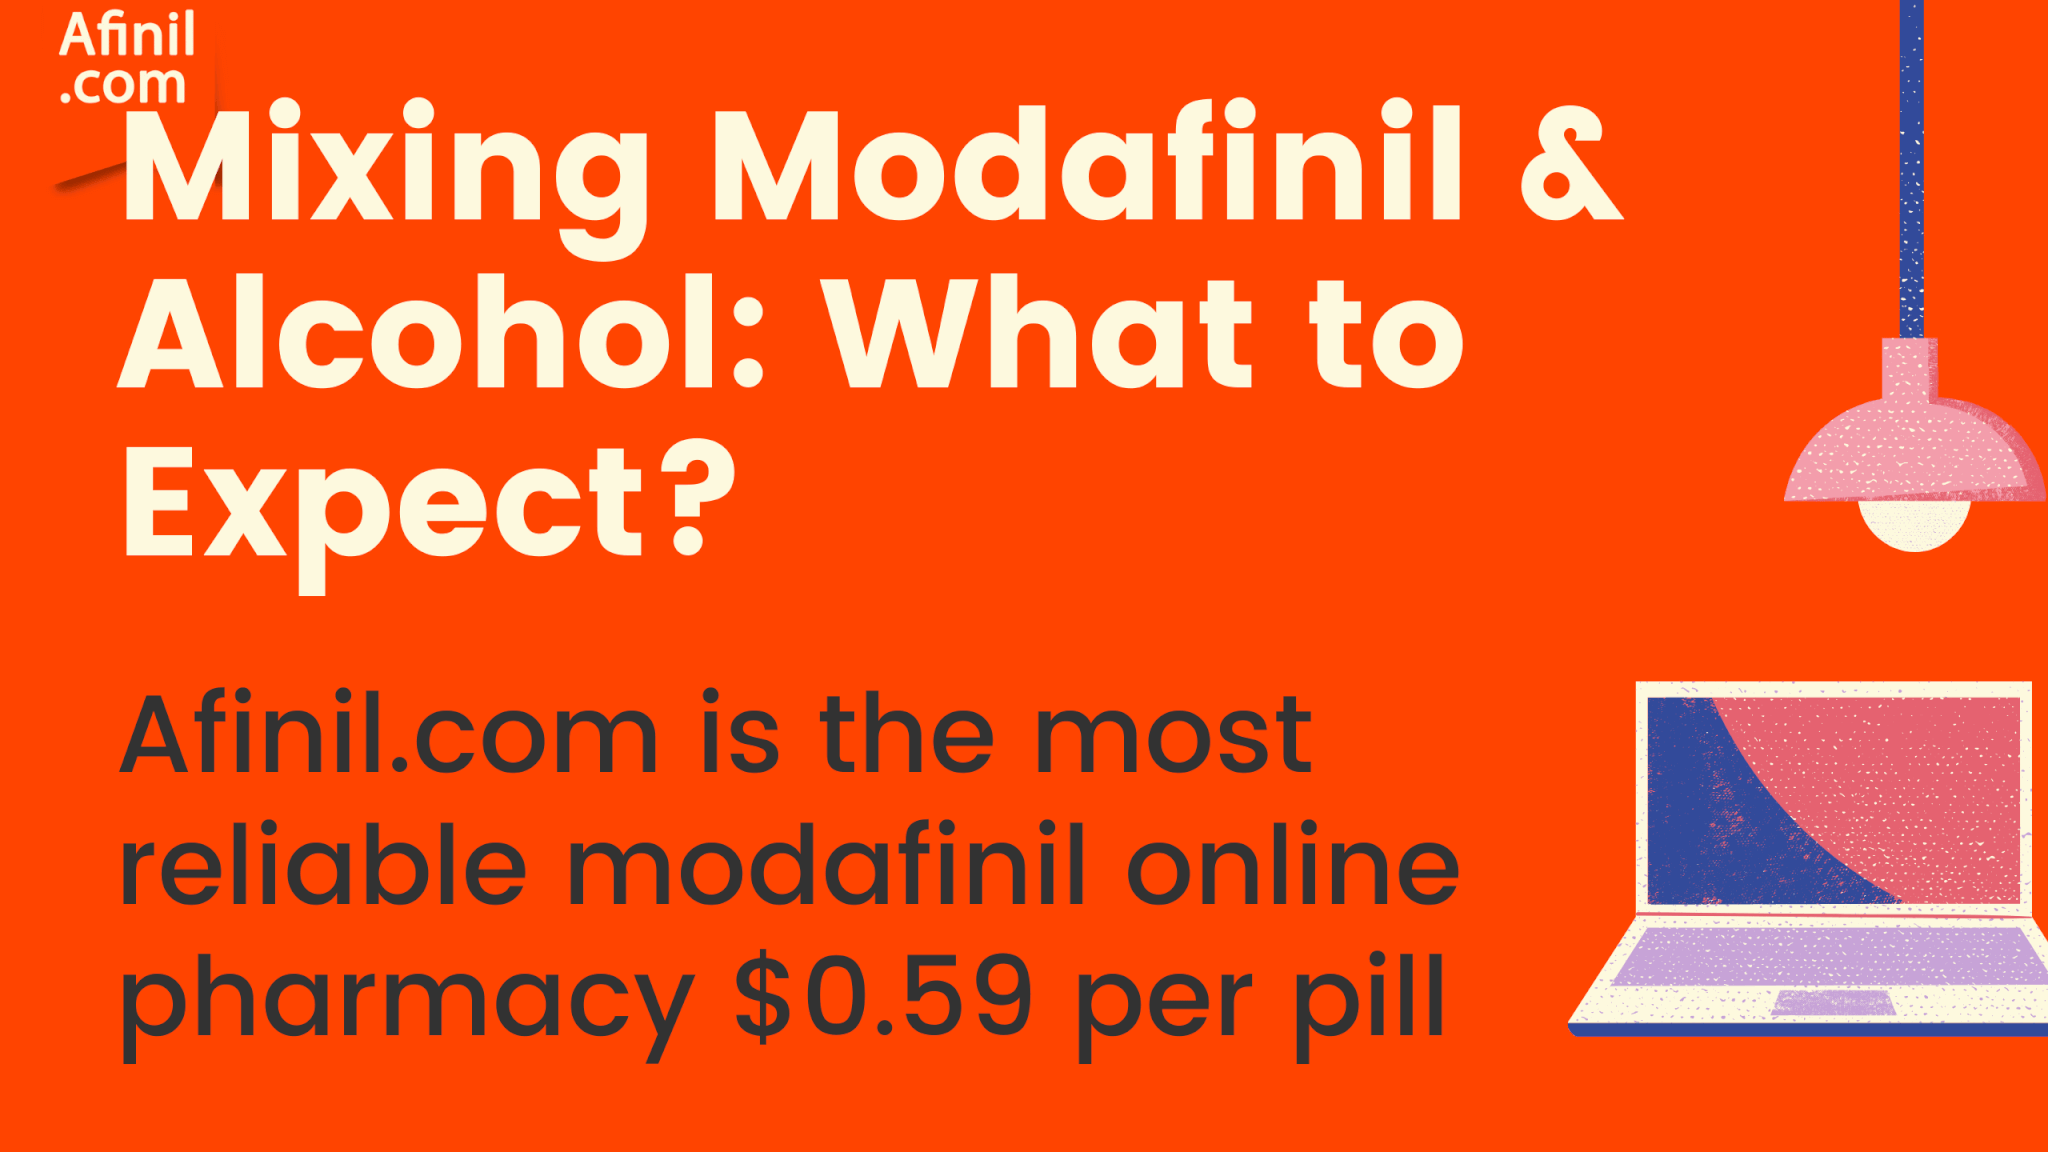 Mixing Modafinil and Alcohol